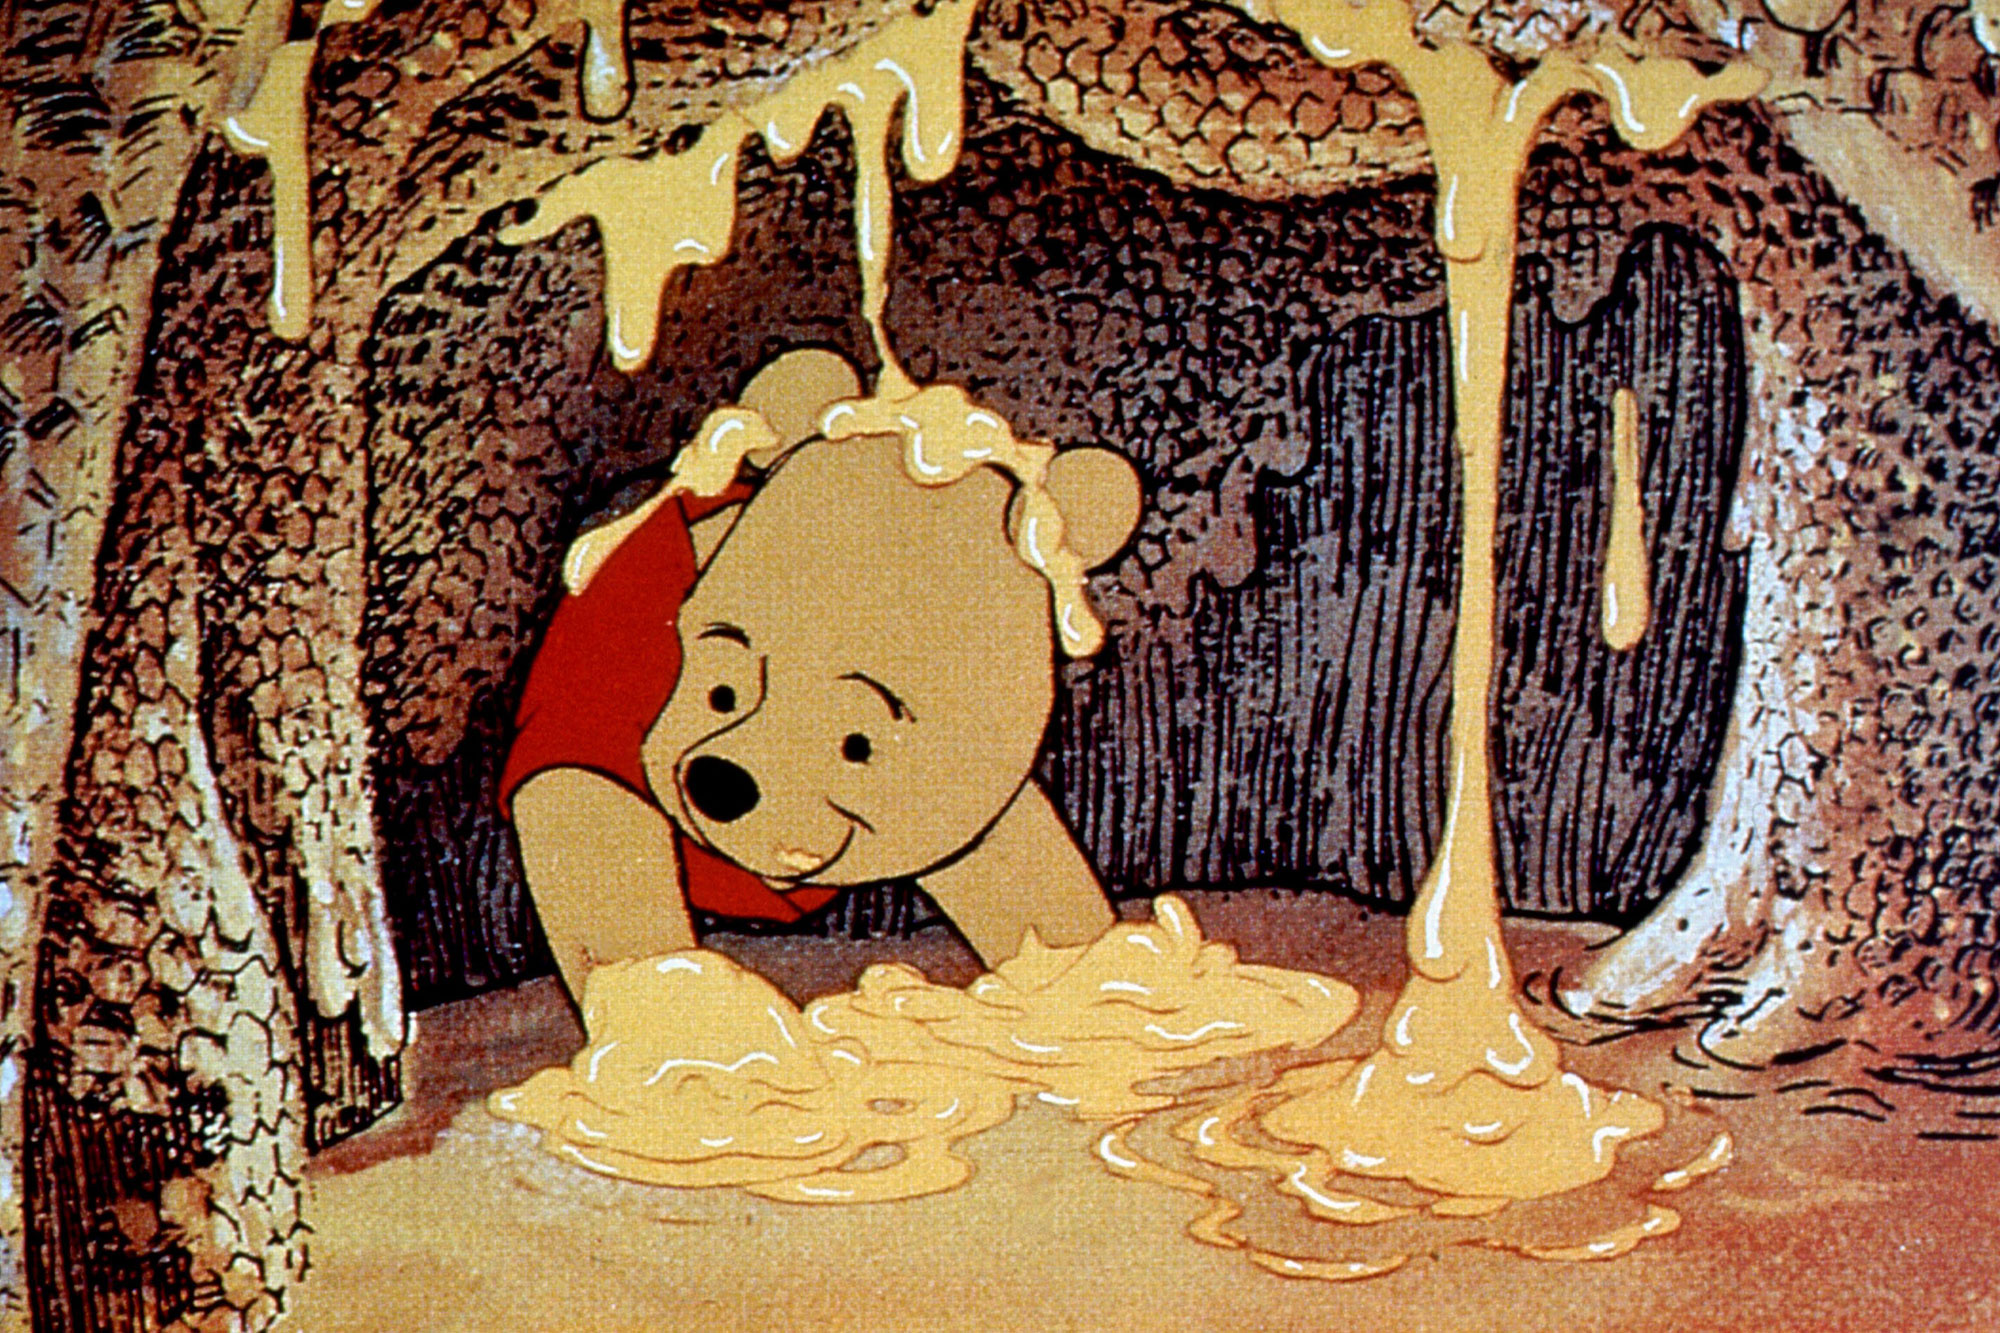 THE NEW ADVENTURES OF WINNIE THE POOH, Winnie the Pooh, 1988, (c) Buena Vista/courtesy Everett Colle